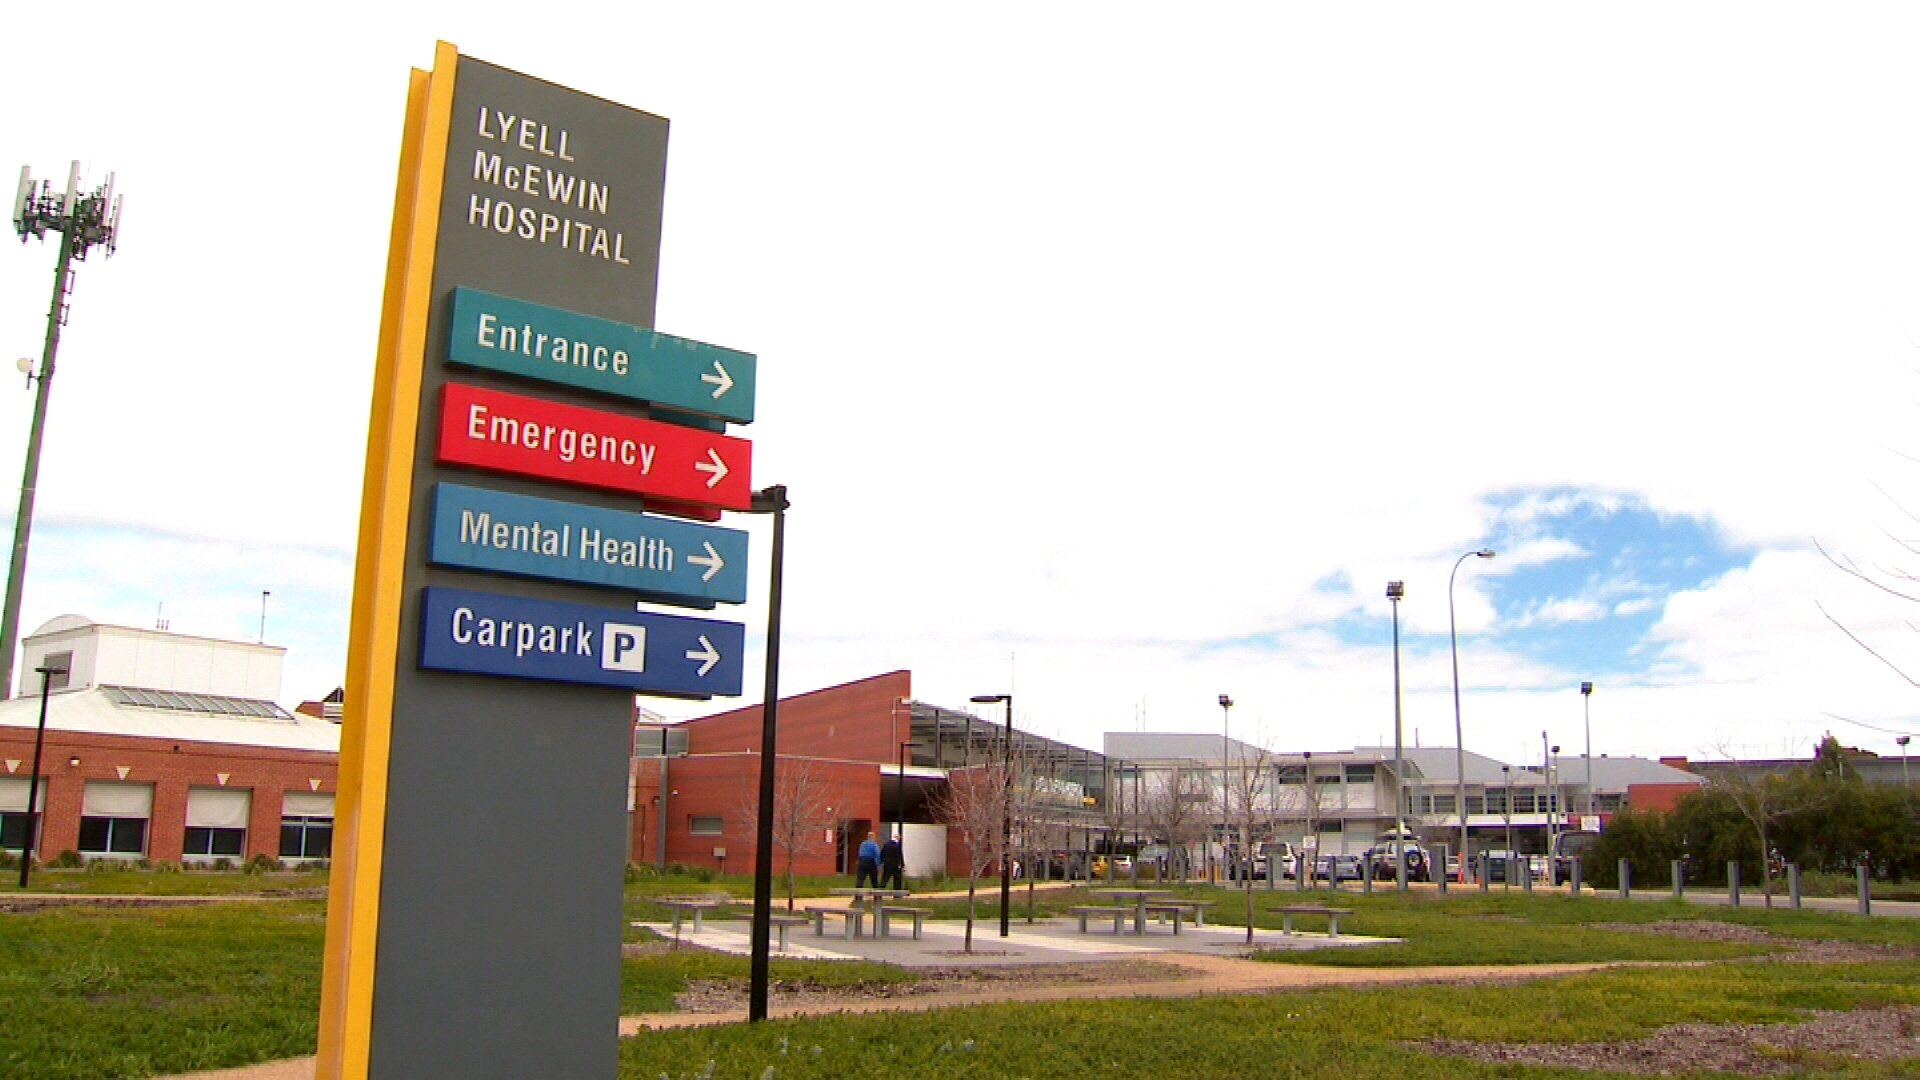 A new coronavirus outbreak in Adelaide is growing, after one woman contracted COVID-19 following treatment at the Lyell McEwin Hospital.